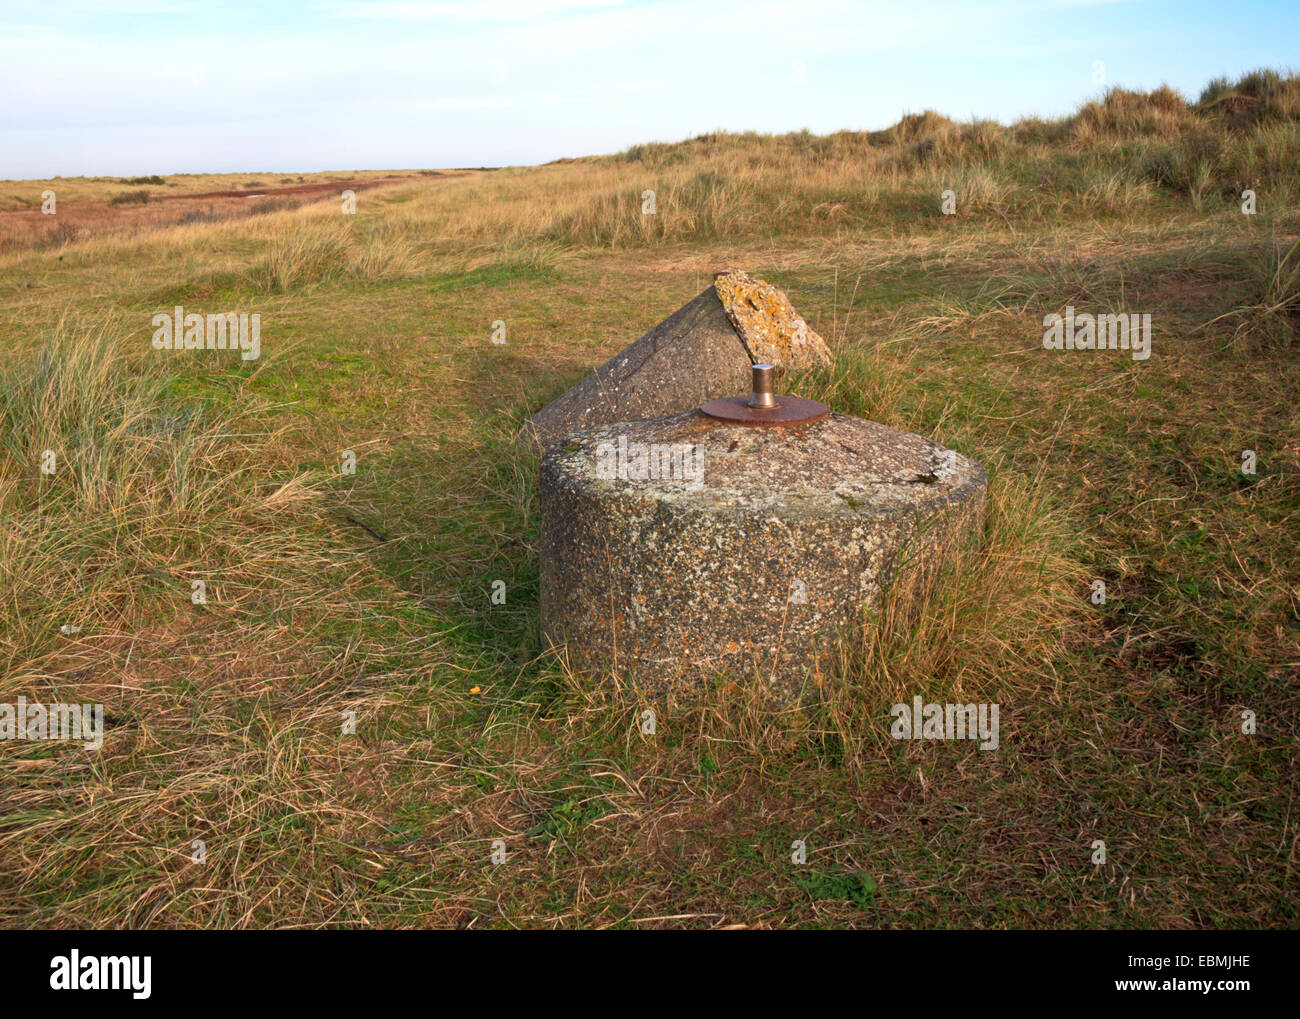 A World War Two spigot mortar emplacement at Holme next the Sea, Norfolk, England, United Kingdom. - Stock Image